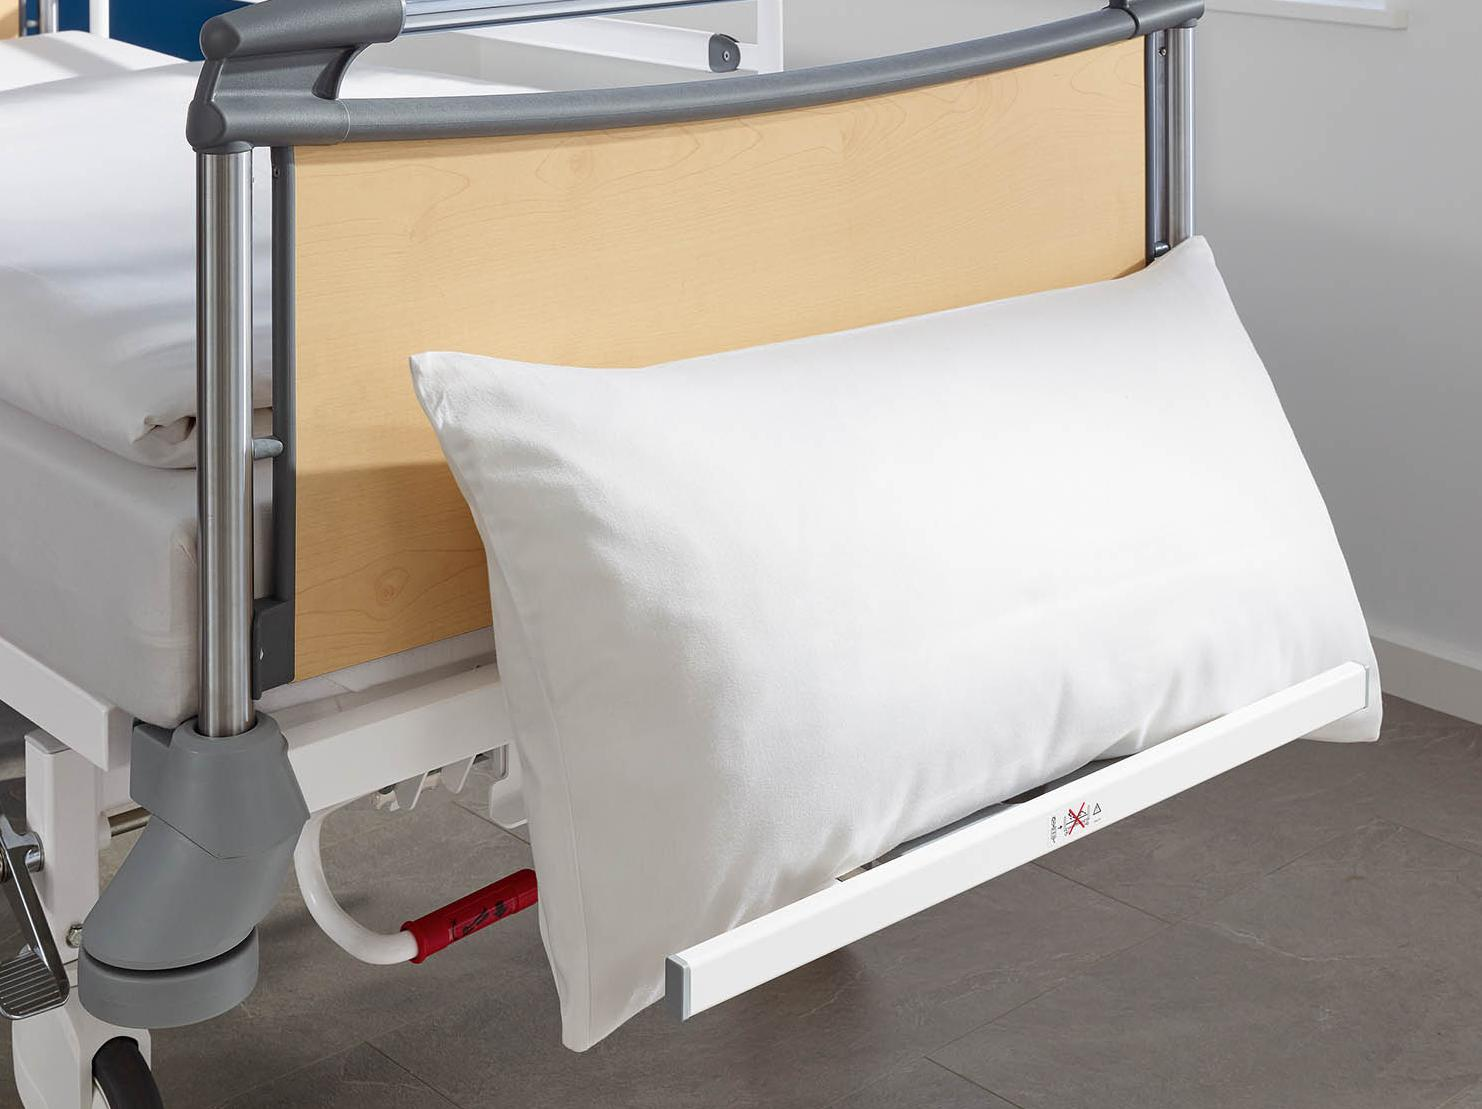 Optional linen holder for the Deka hospital bed